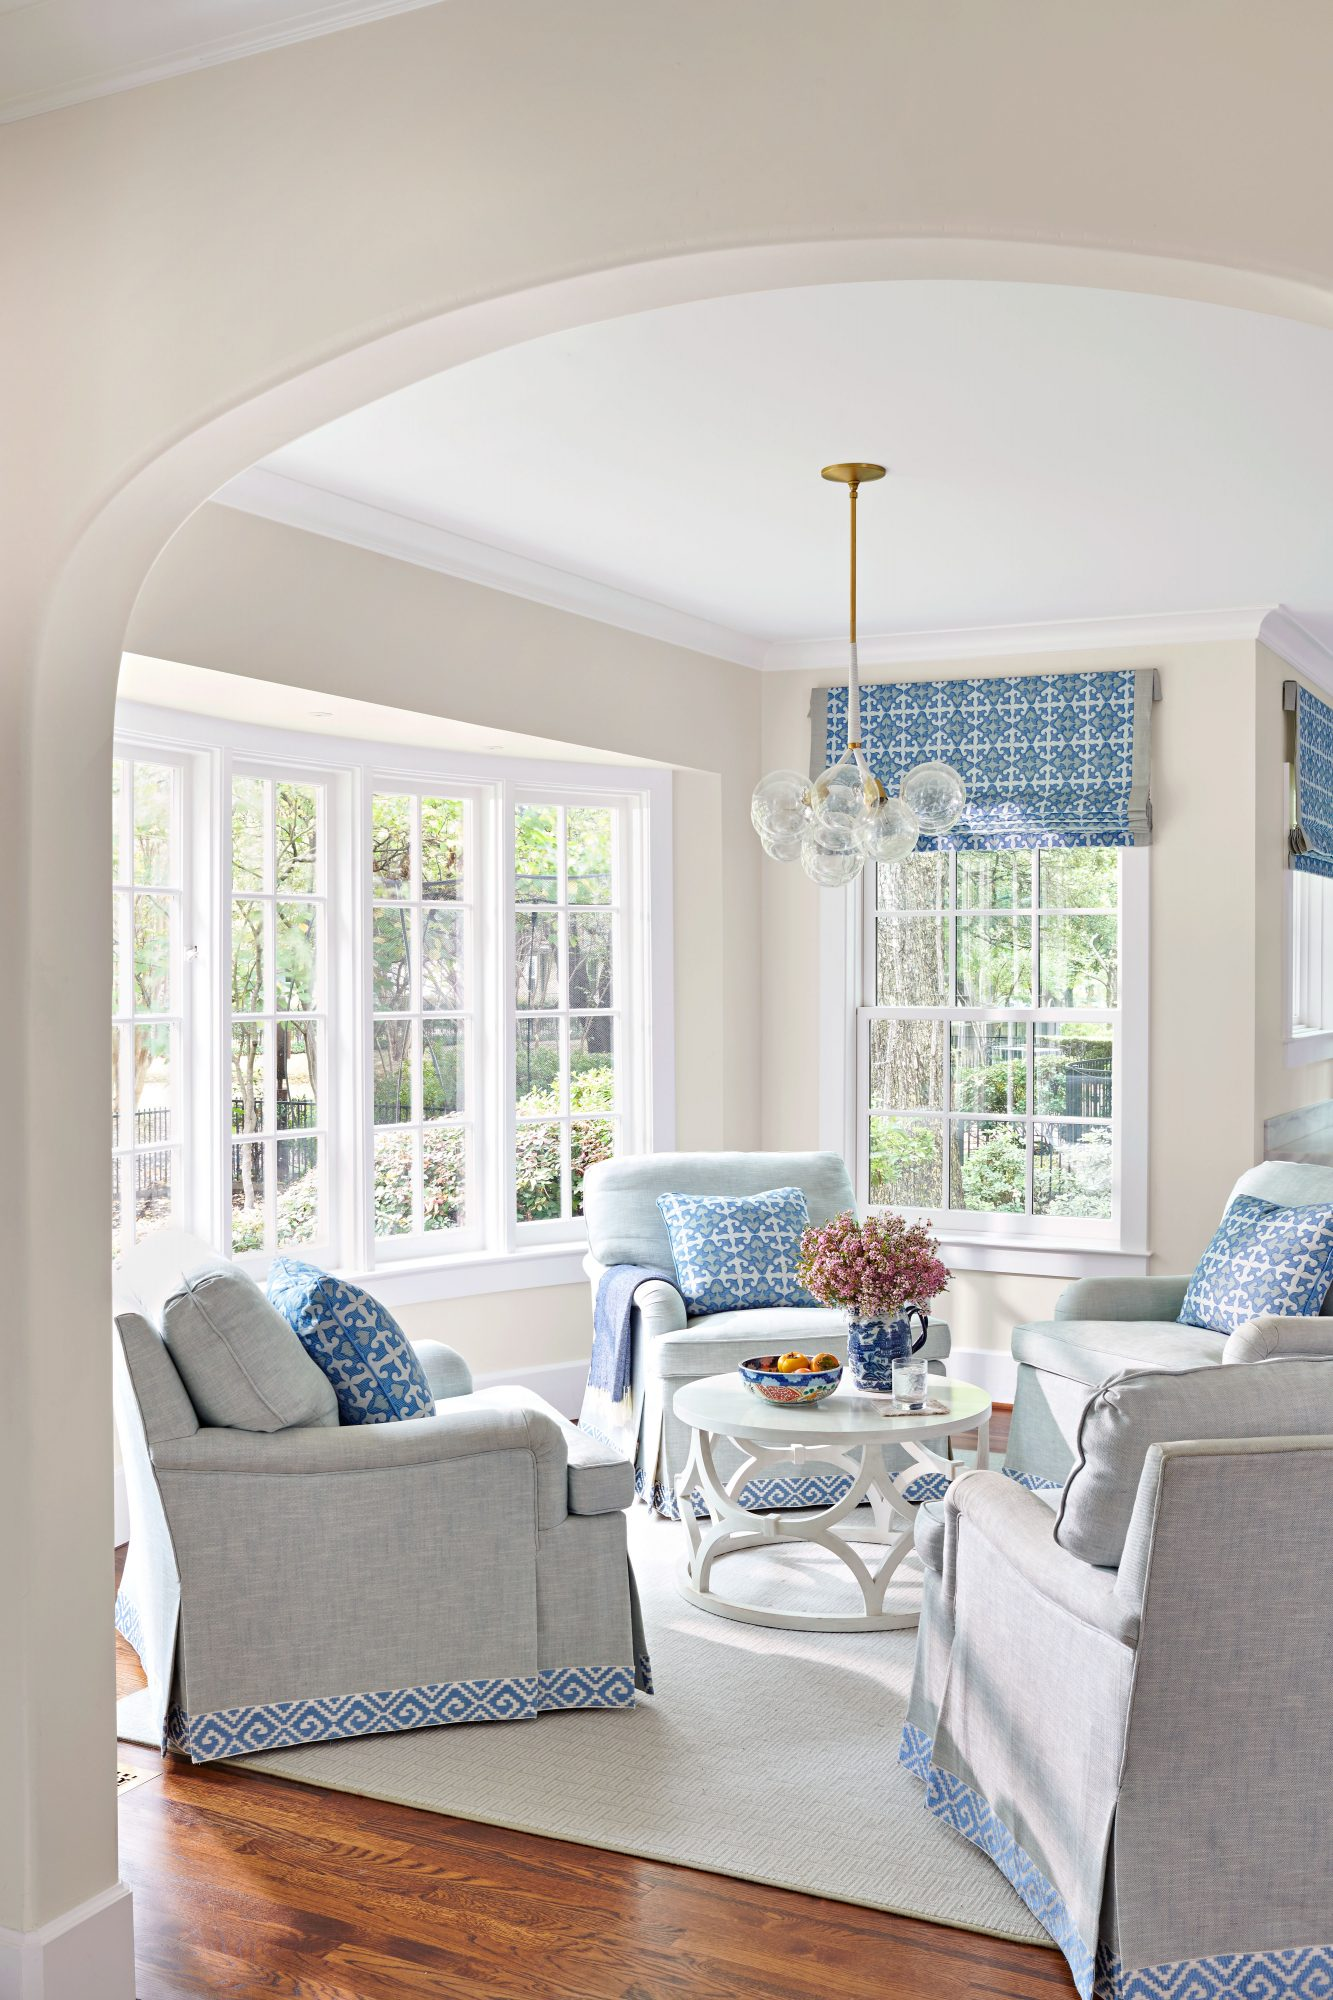 Sitting area with white walls and four arm chairs with blue accents